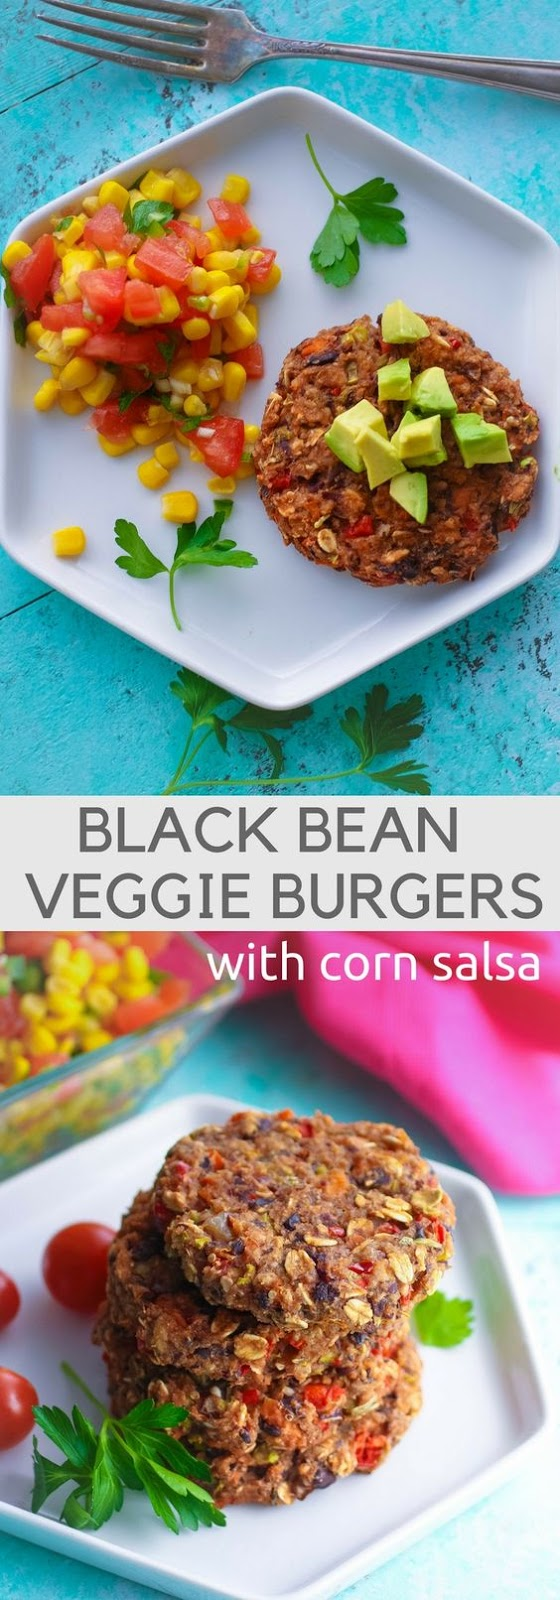 Black Bean Veggie Burgers With Corn Salsa